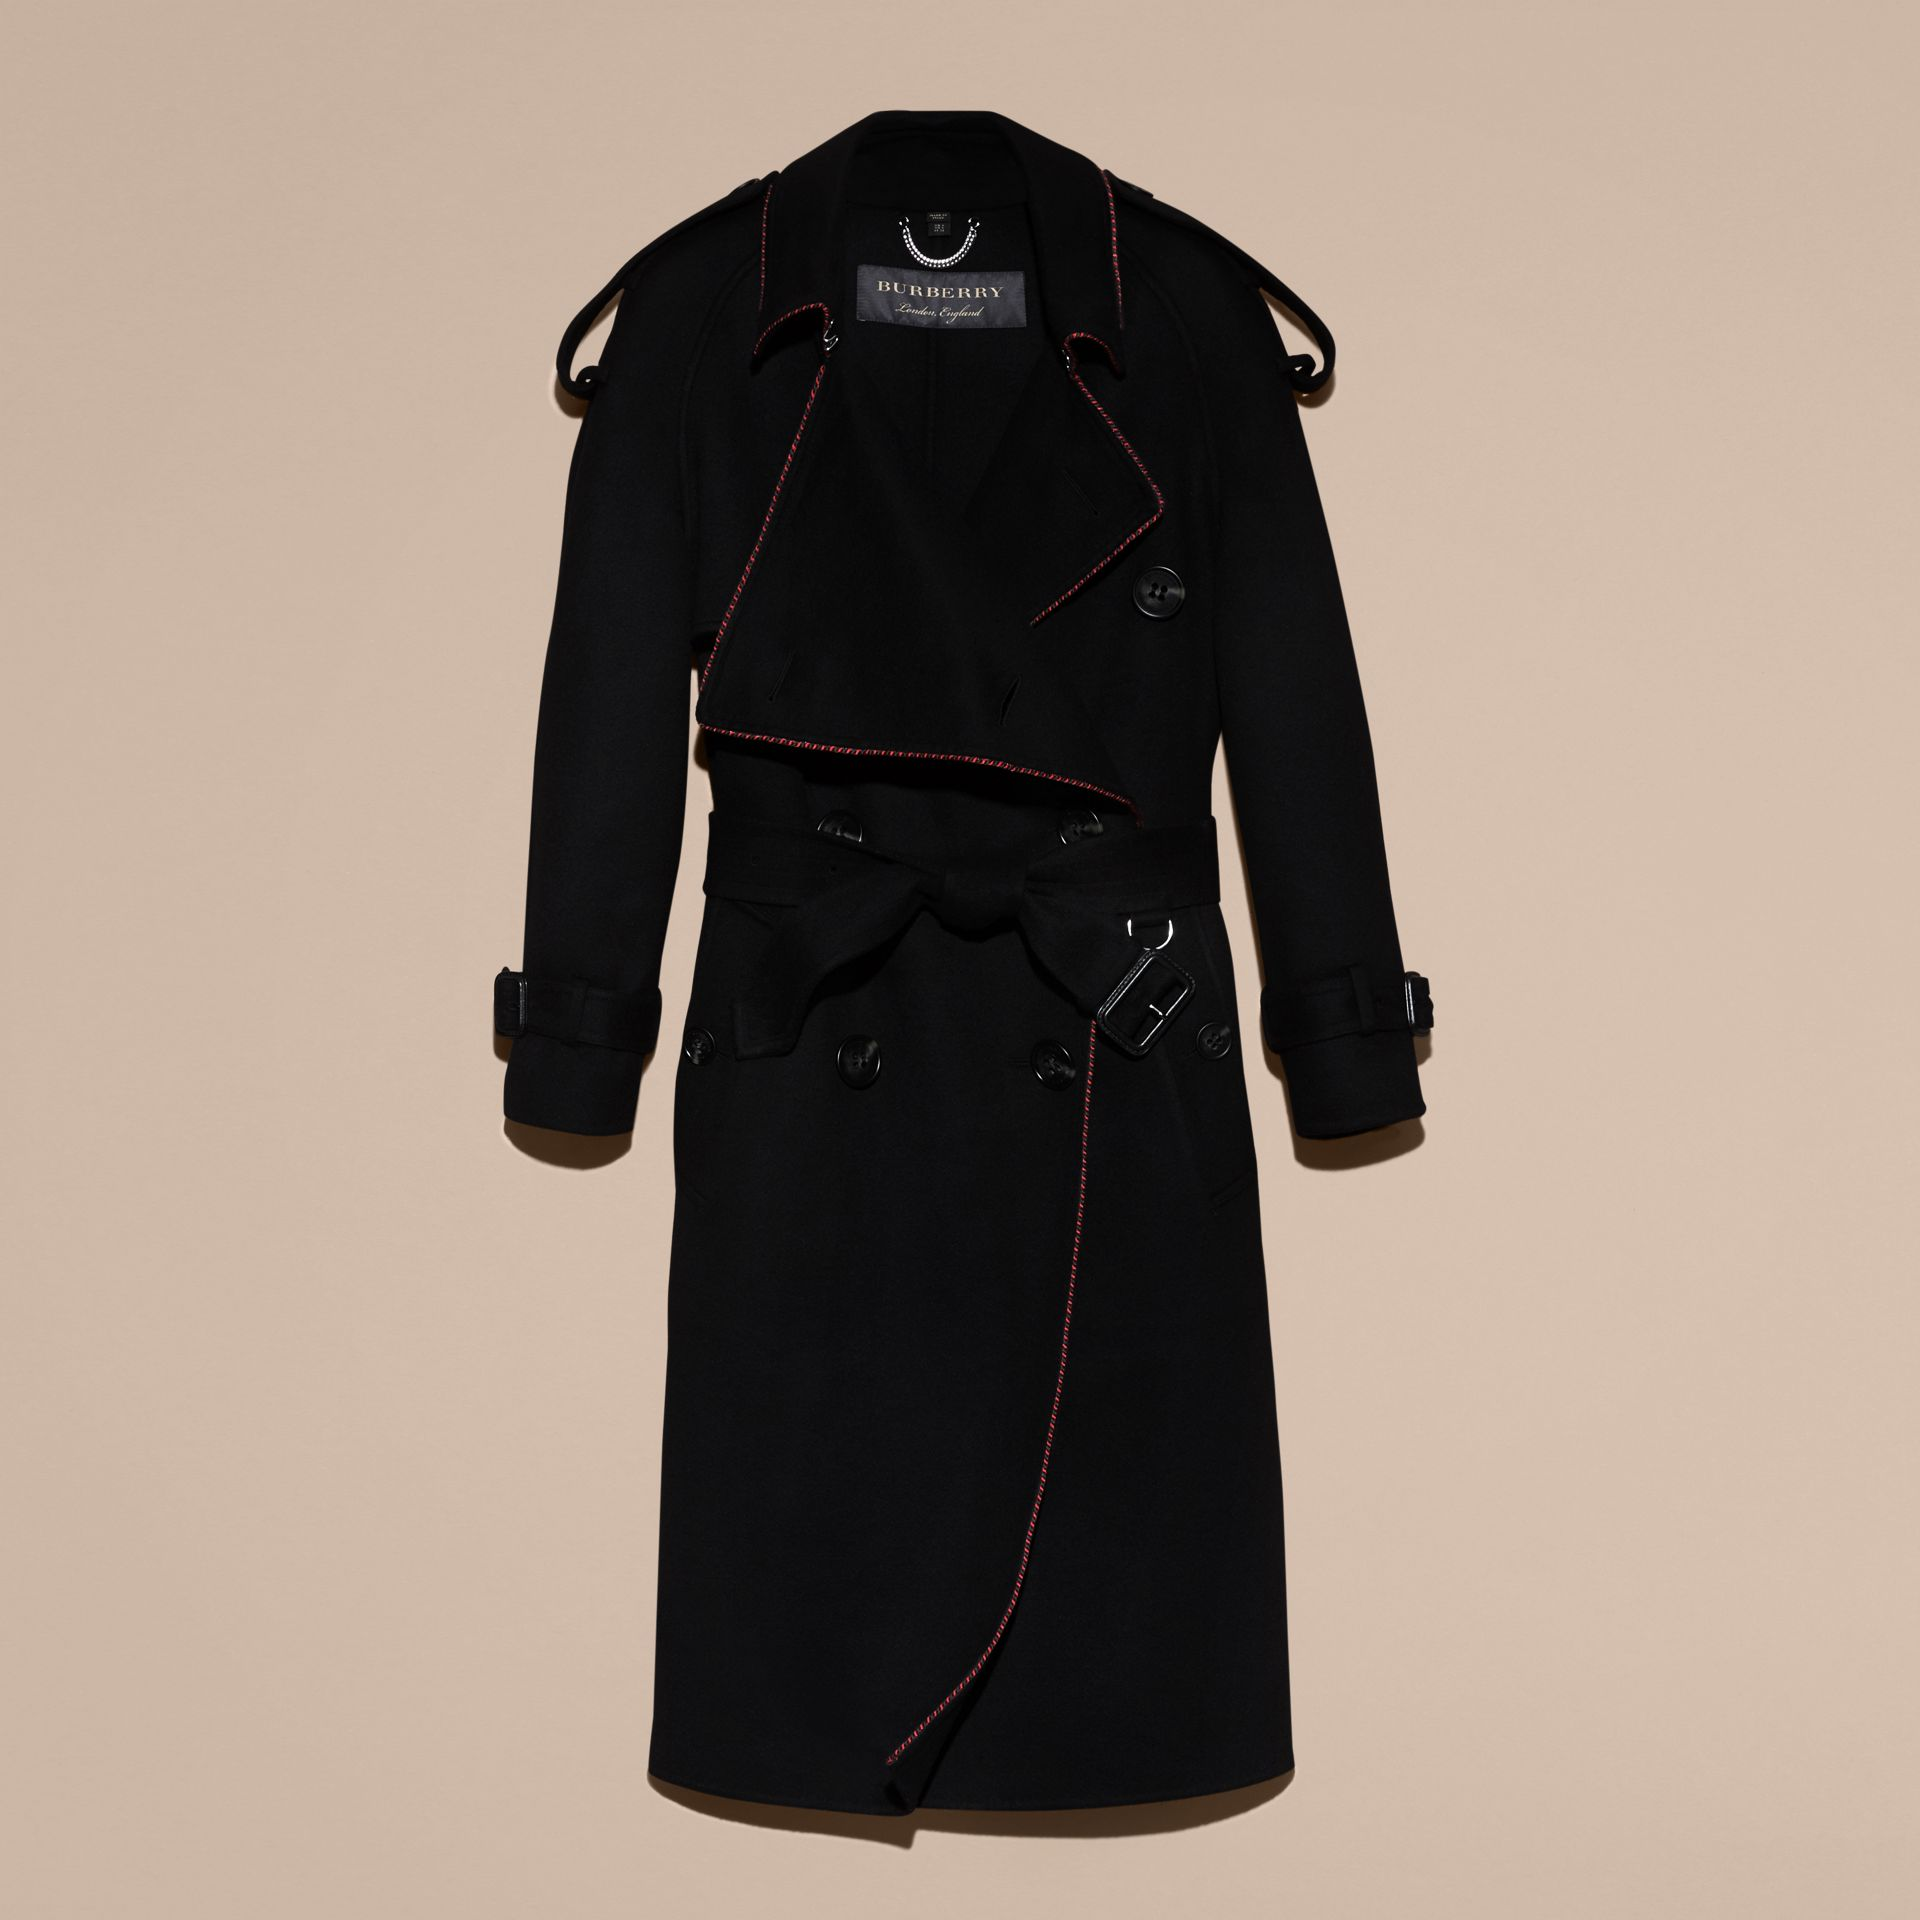 Black Deconstructed Cashmere Wool Trench Coat with Piping - gallery image 4